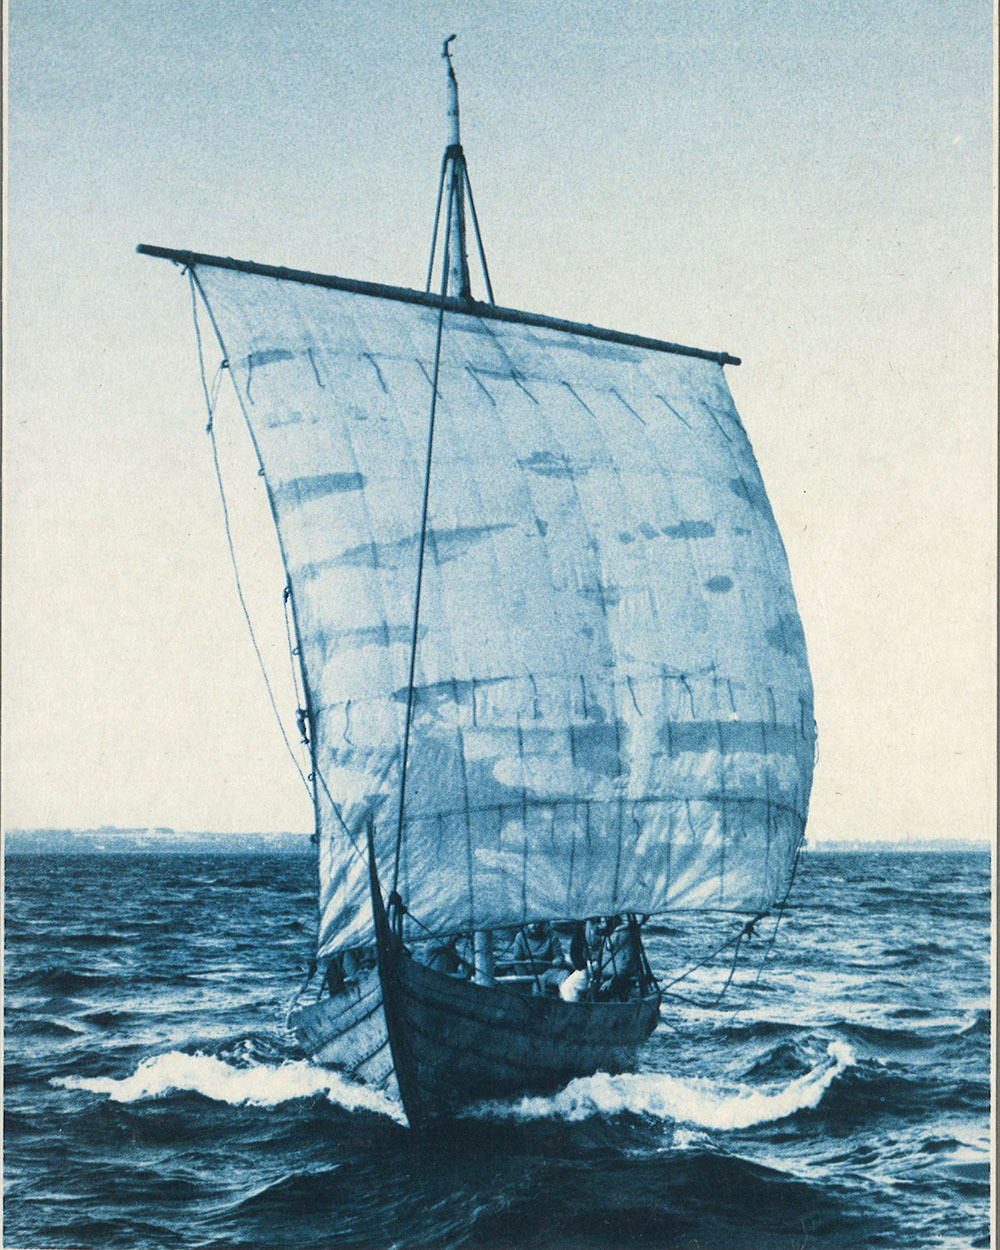 Trireme in the sea